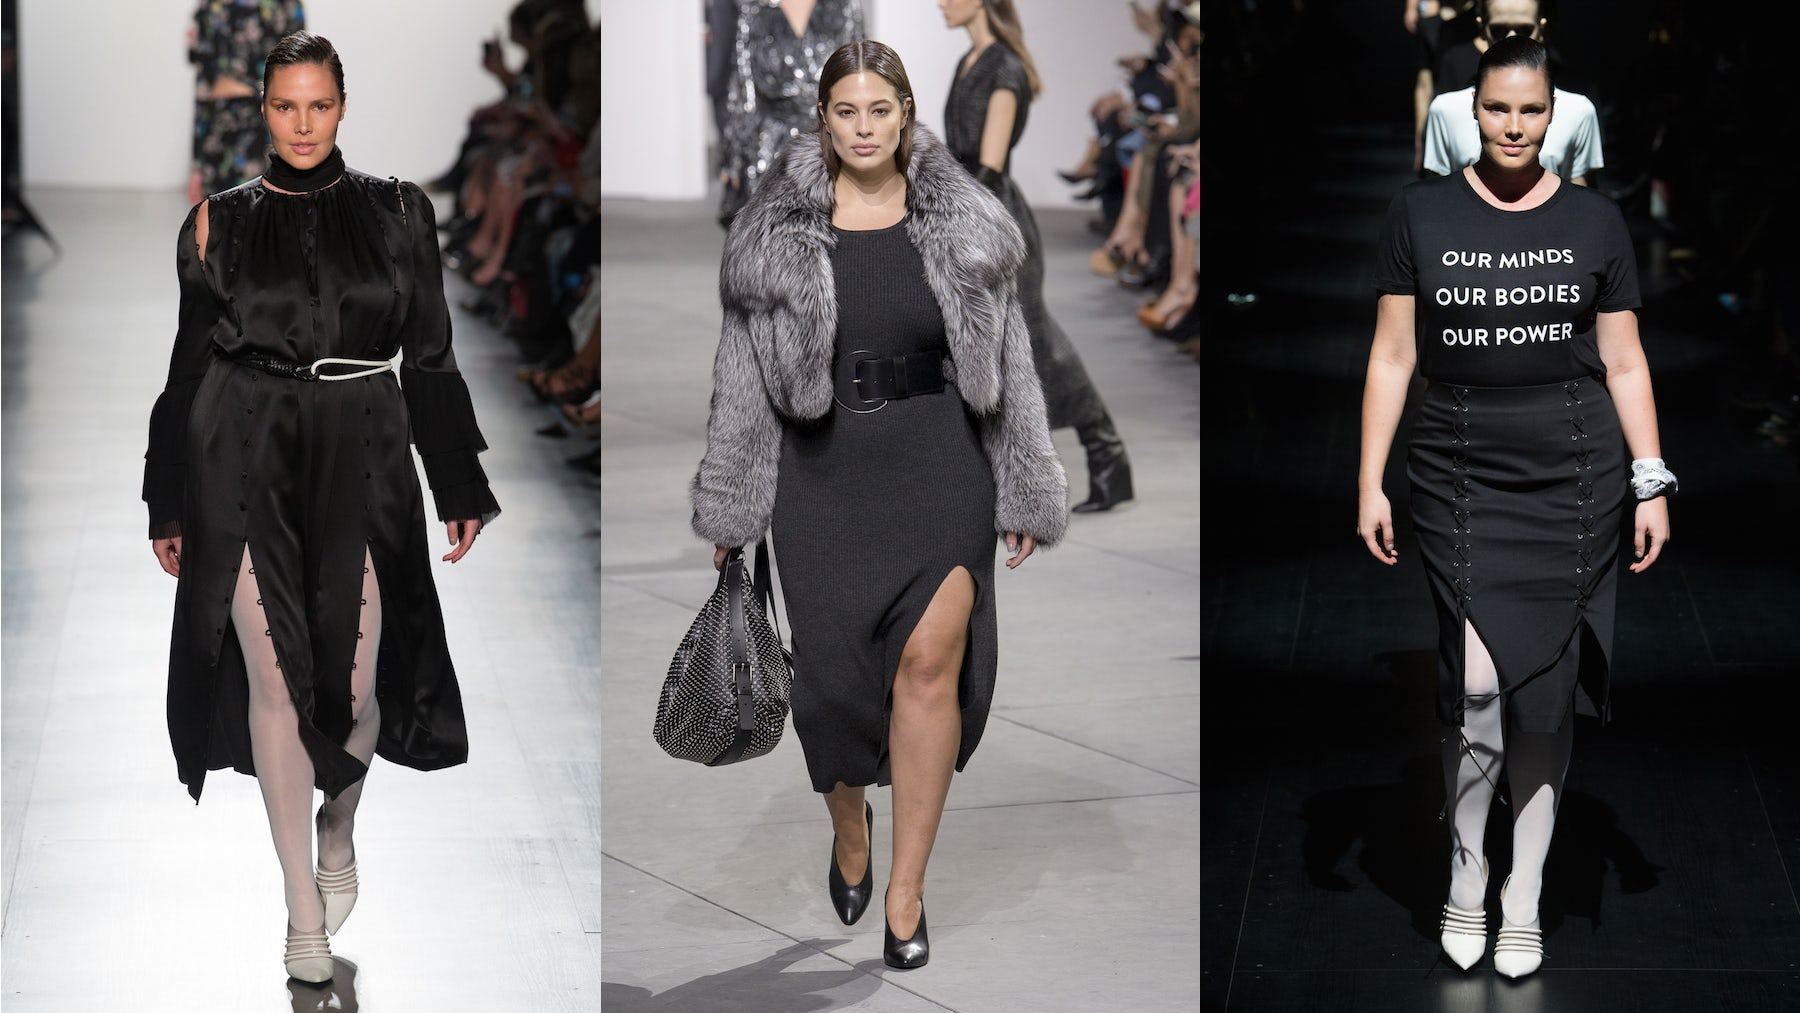 Candice Huffine for Prabal Gurung (left and right) Ashley Graham for Michael Kors (centre) | Source: InDigital